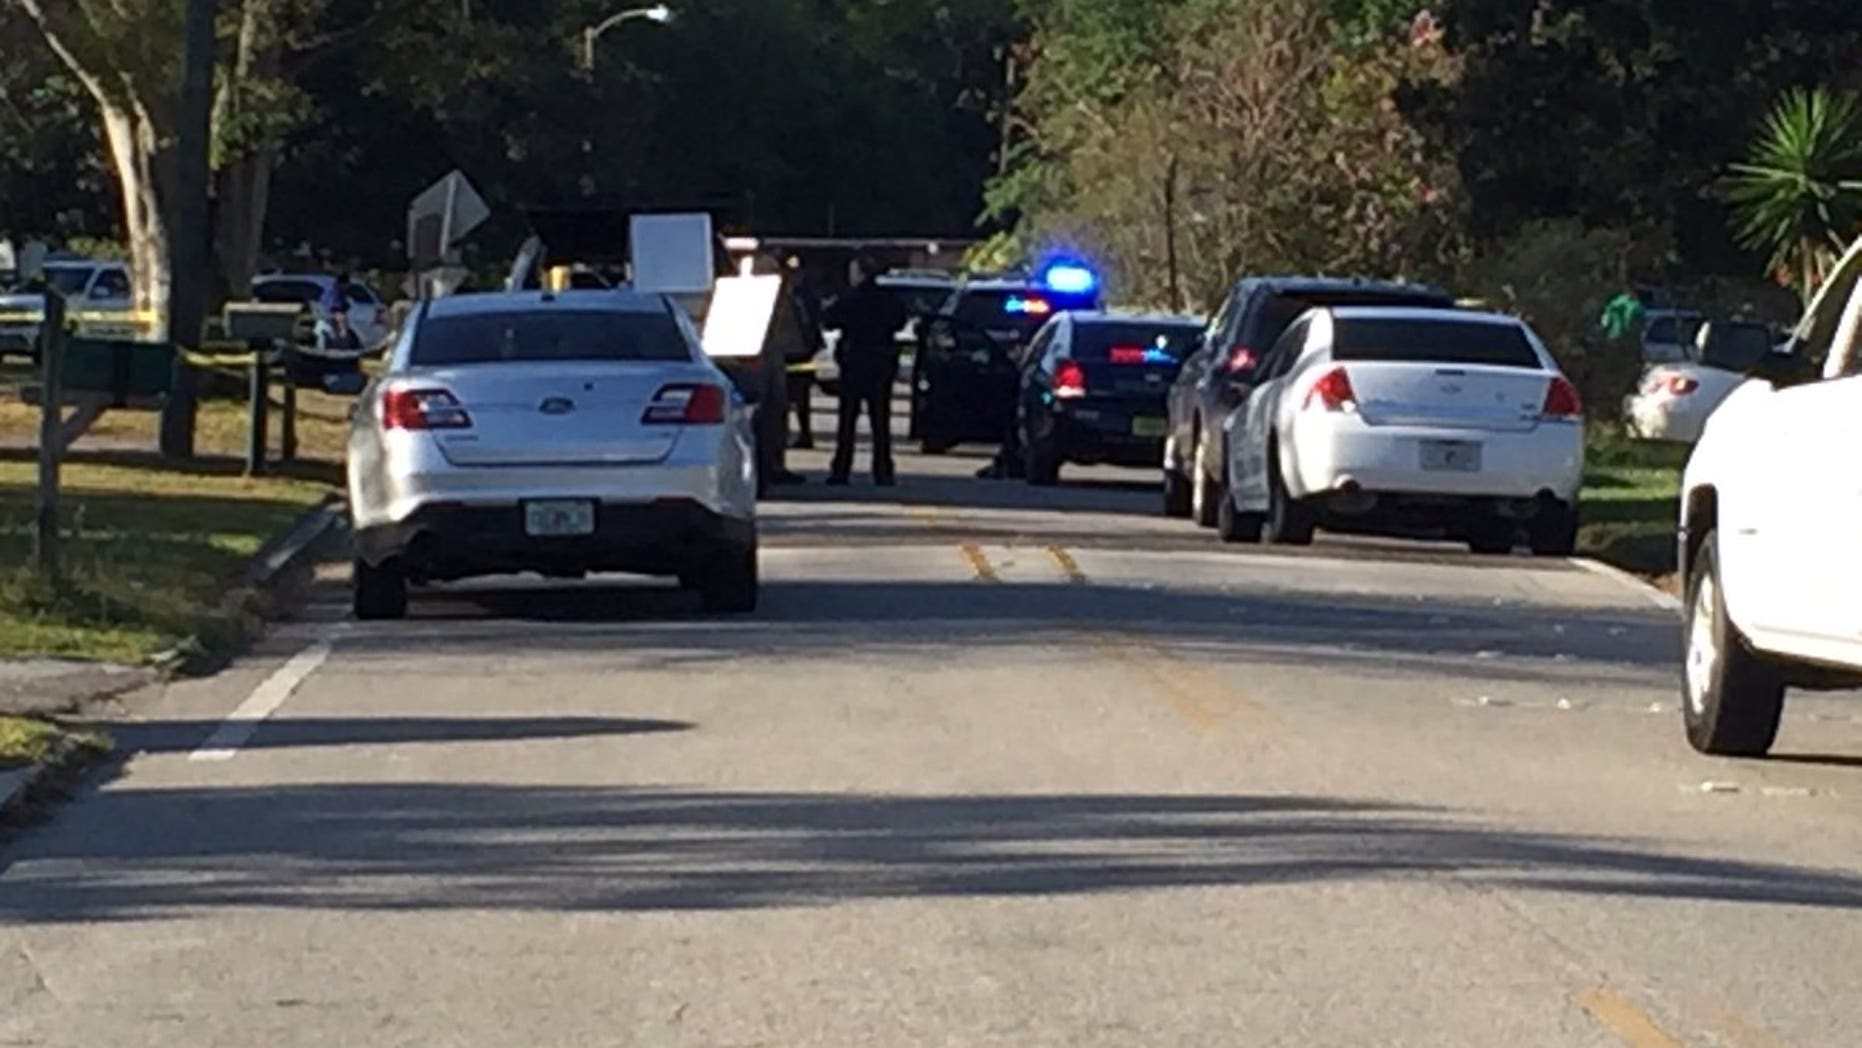 The scene of the shootings in Sanford.